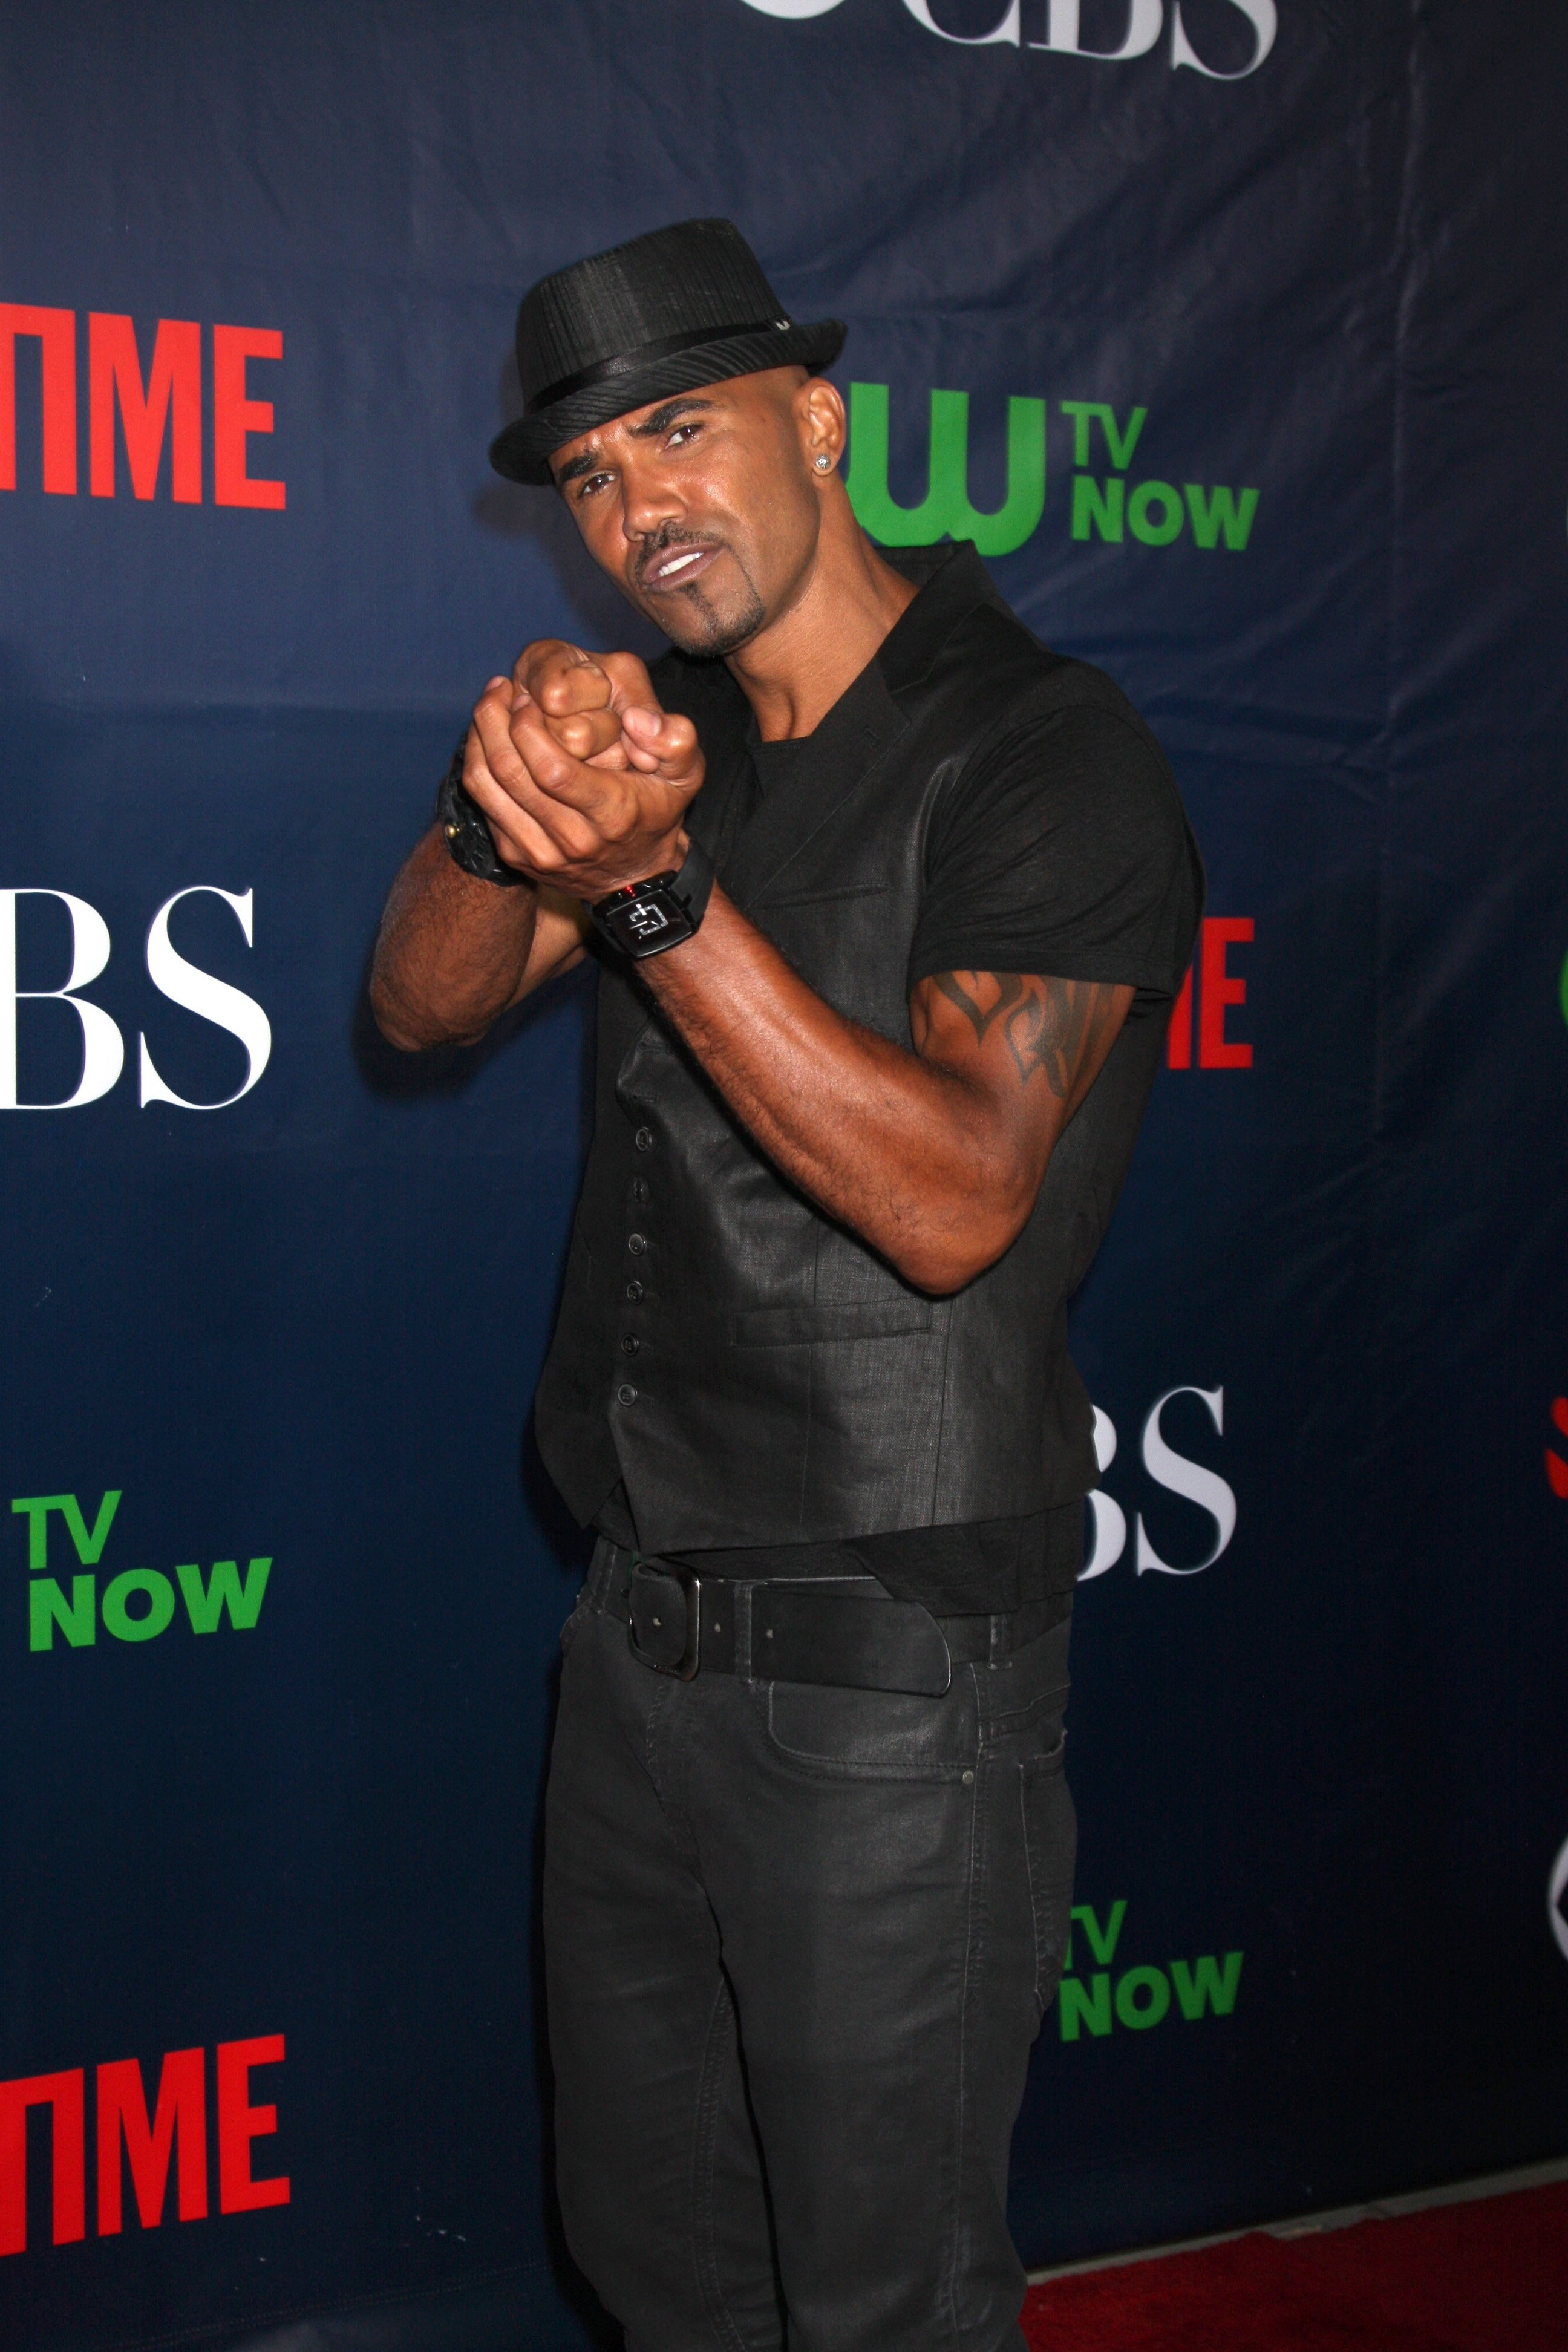 Shemar Moore at the CBS TCA July 2014 Party at the Pacific Design Center on July 17, 2014 in West Hollywood, CA / Source: Shutterstock